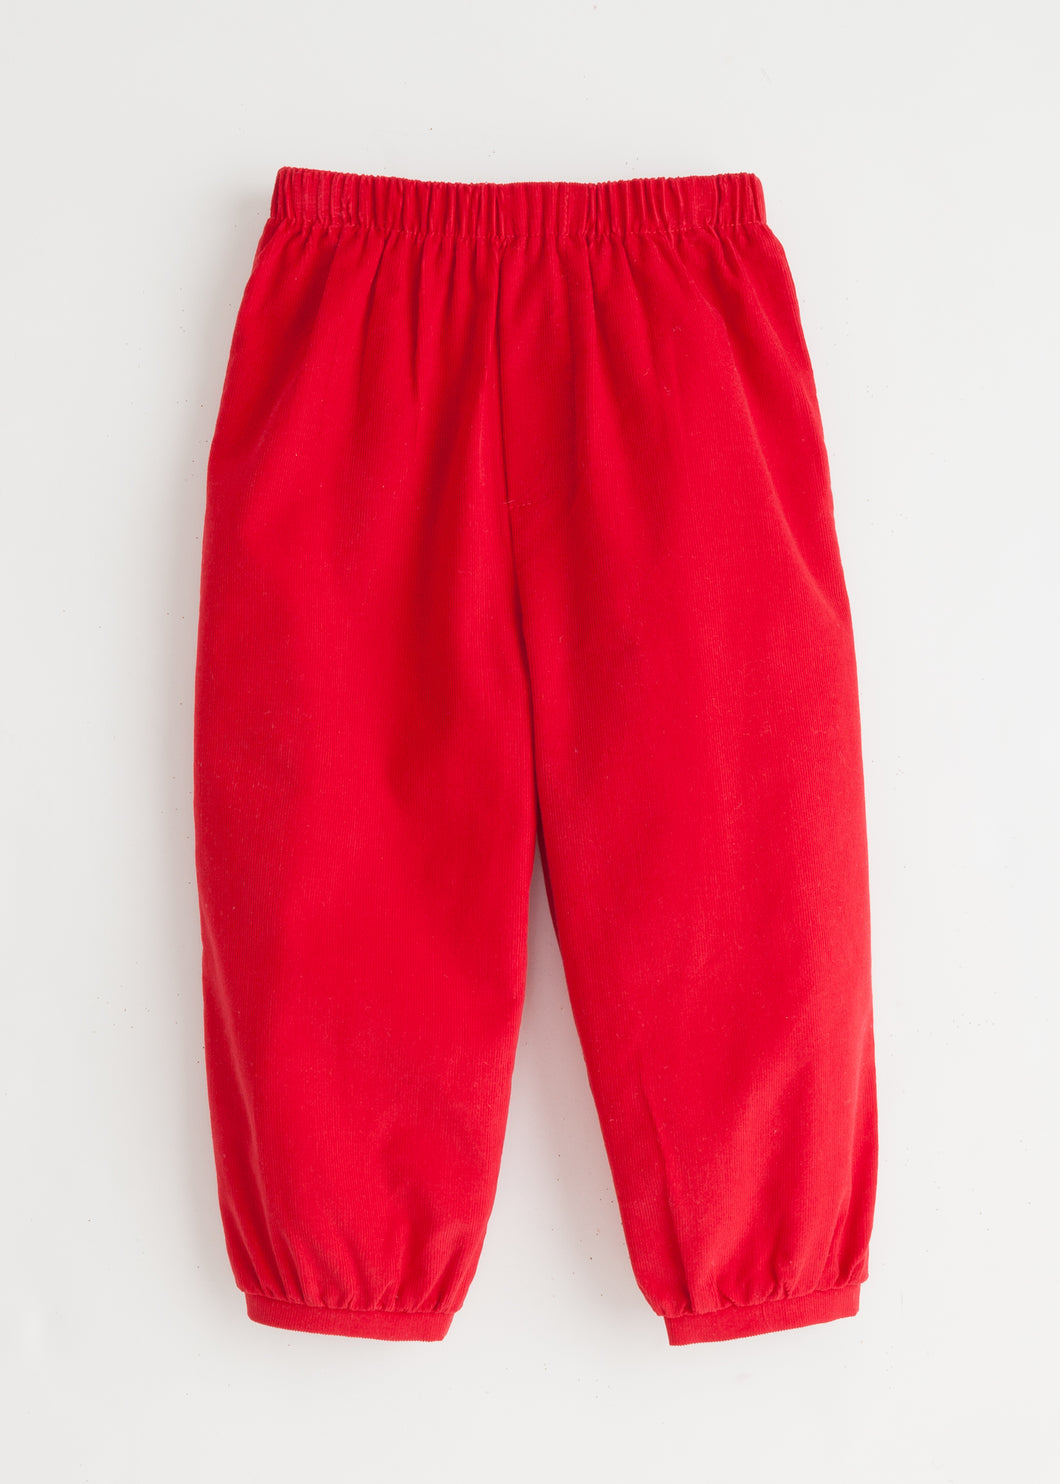 Banded Pull on Pant - Red Corduroy